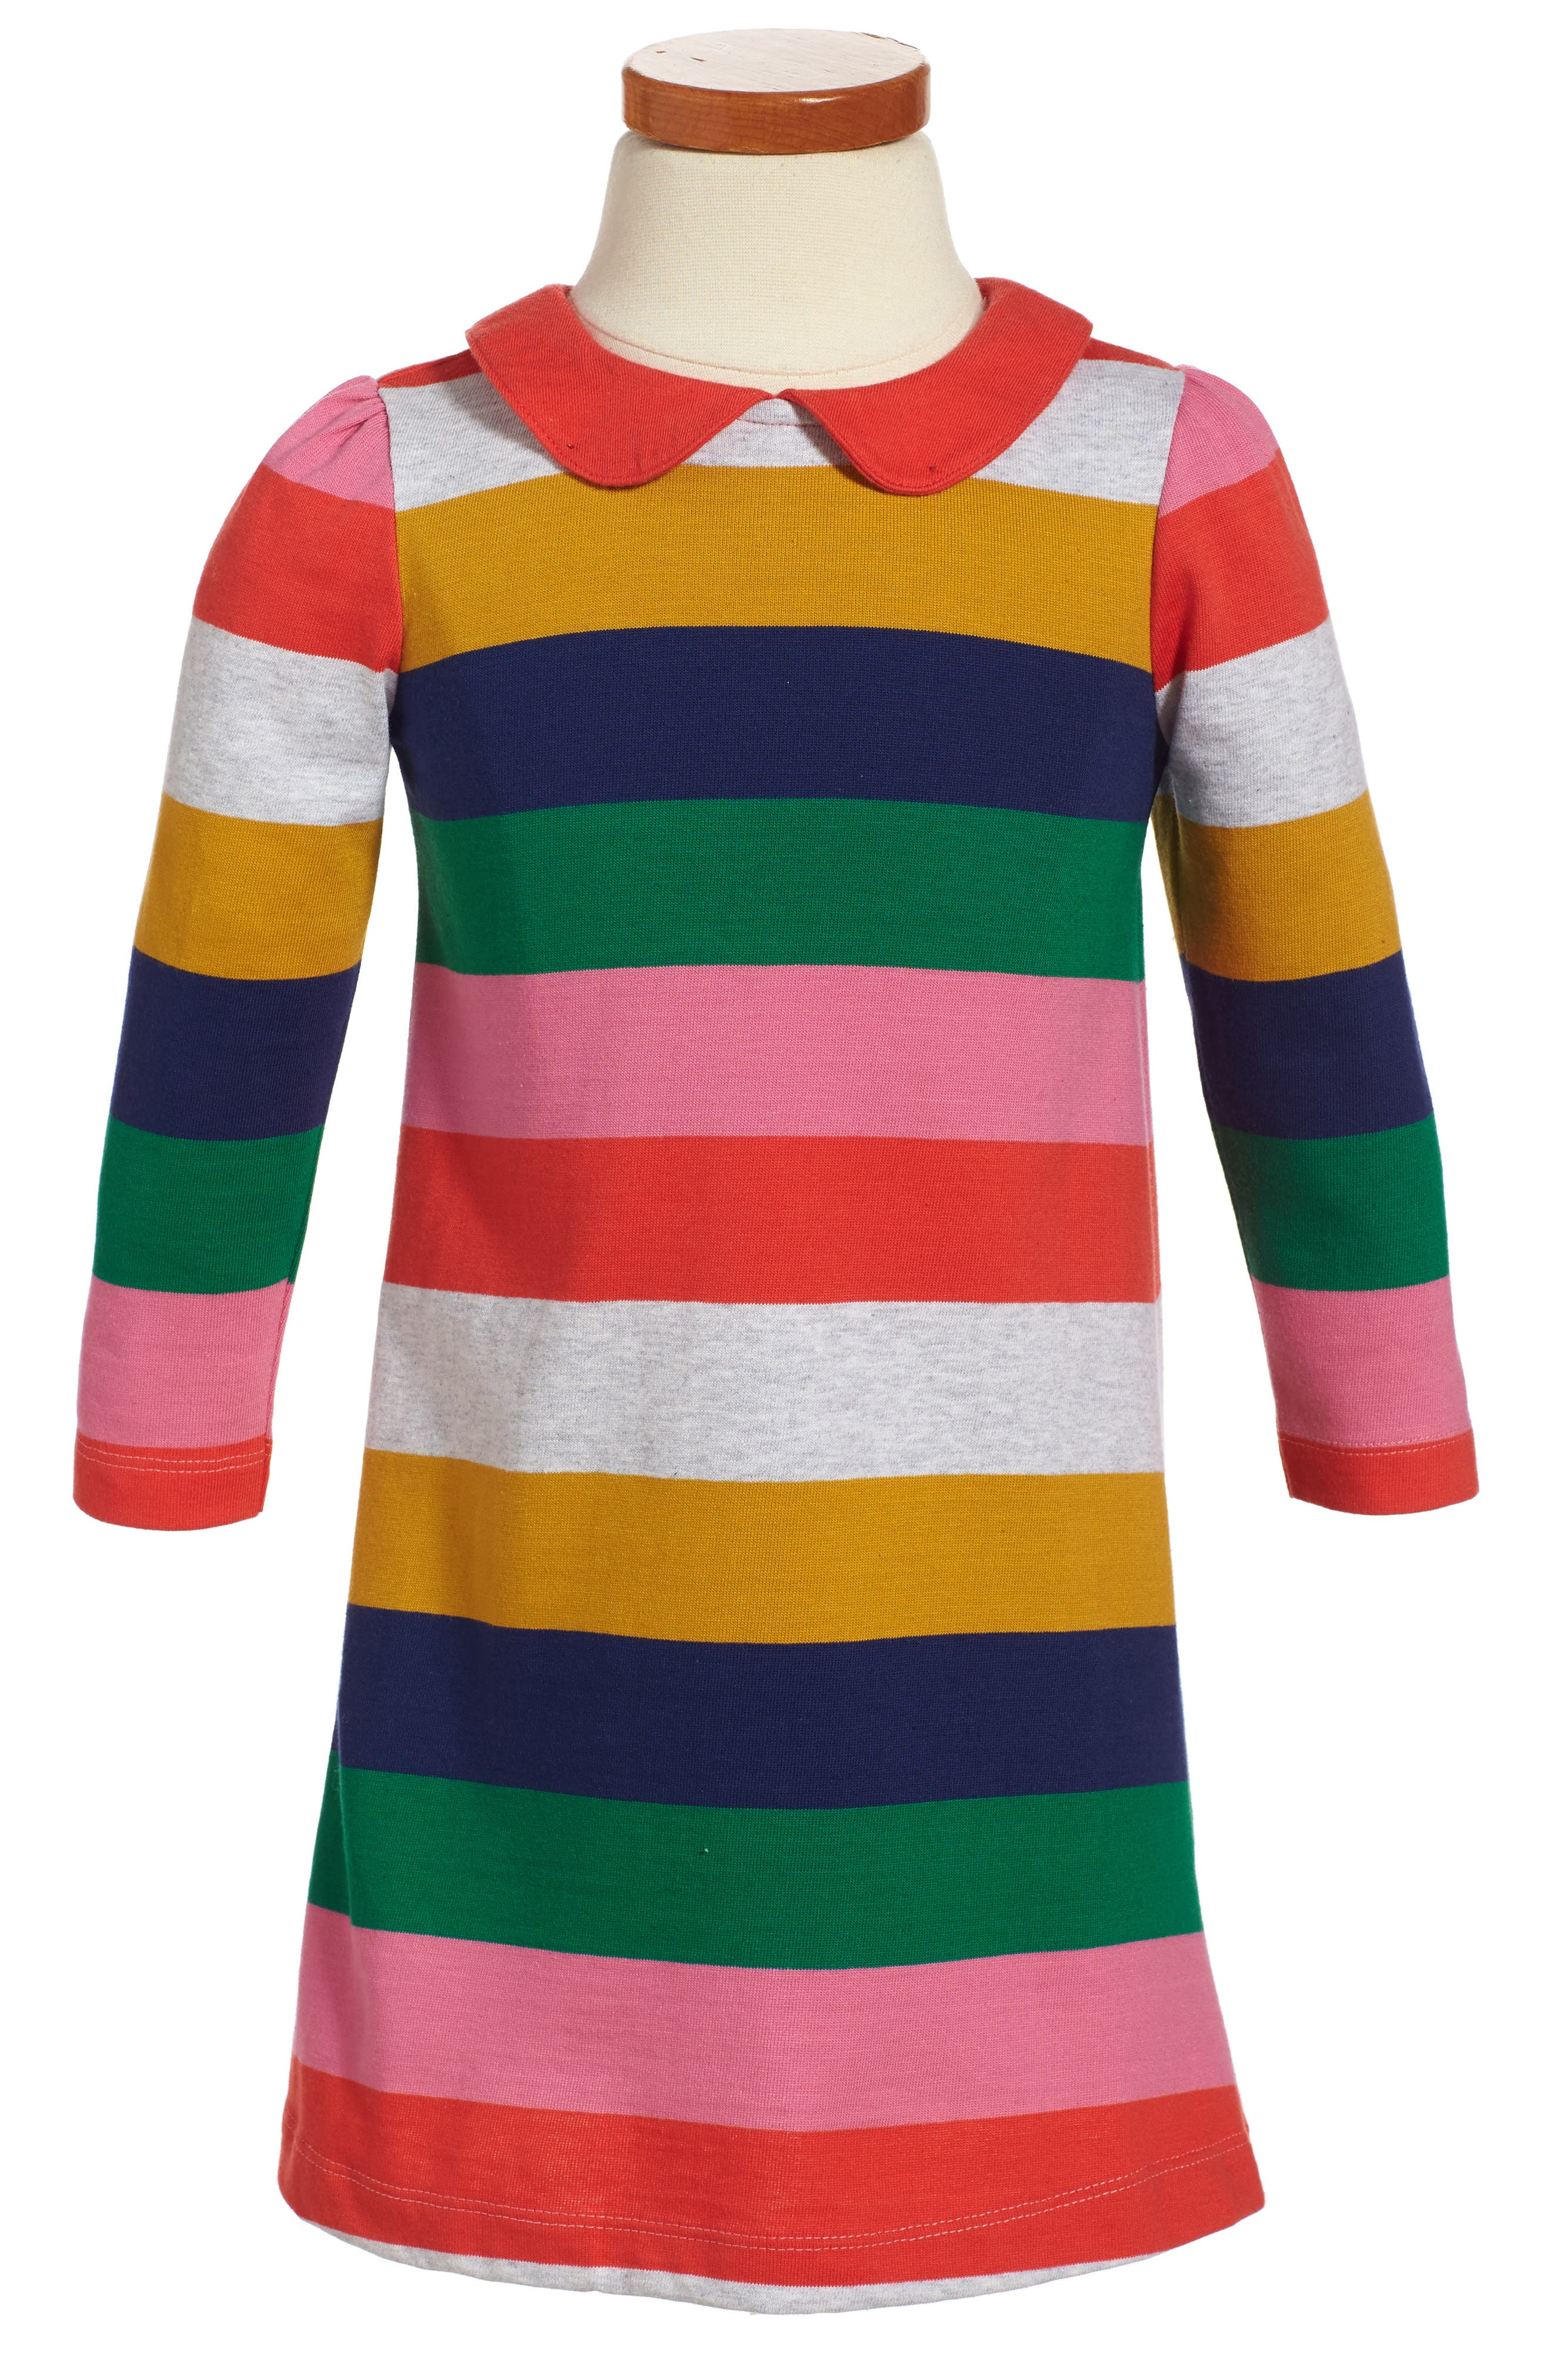 MINI BODEN Collared Jersey Dress